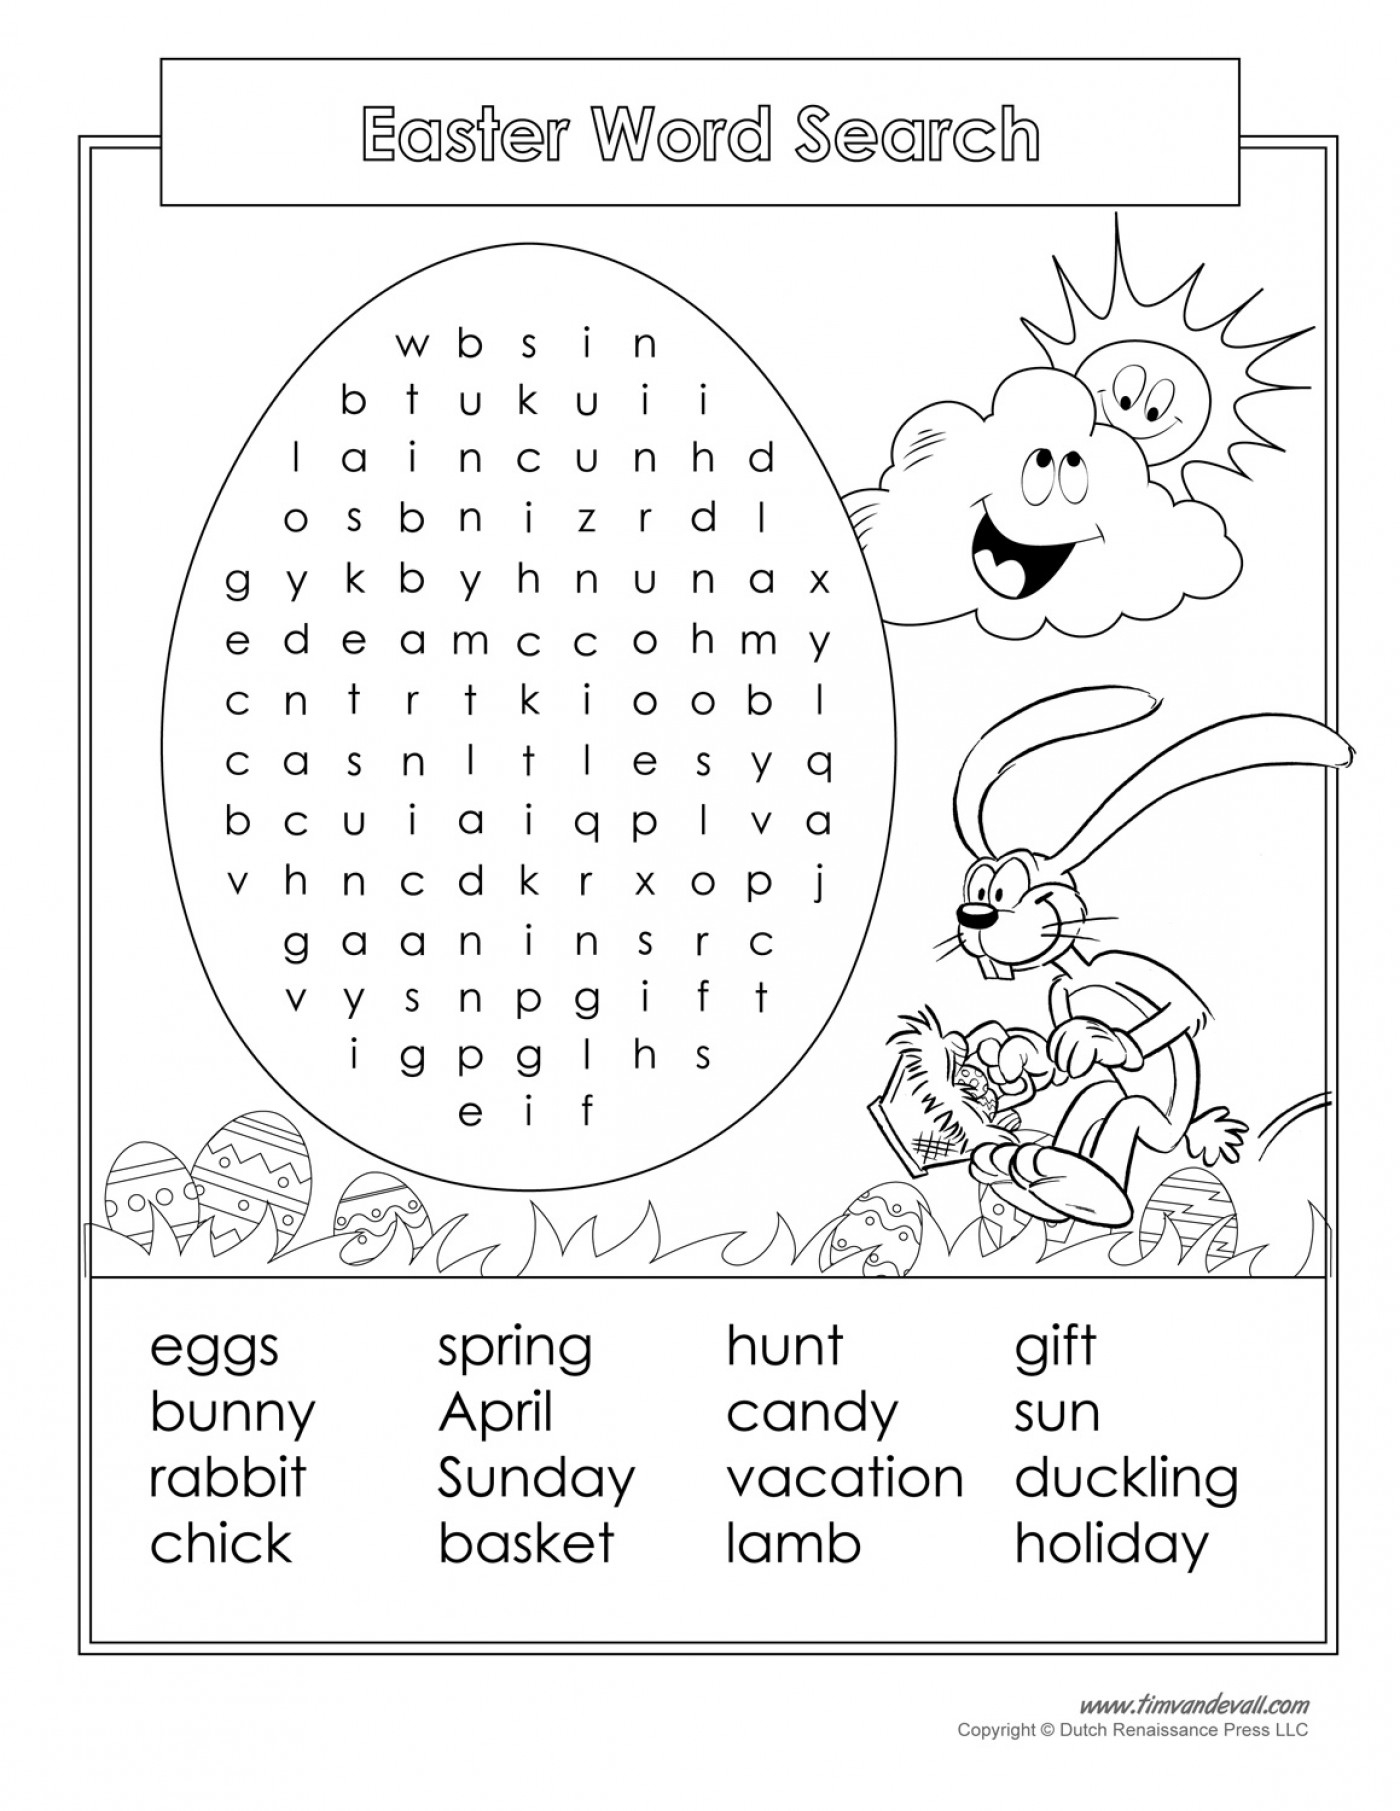 Easter Crossword Puzzle Printable Crosswords Free Word - Free - Printable Crossword Spring